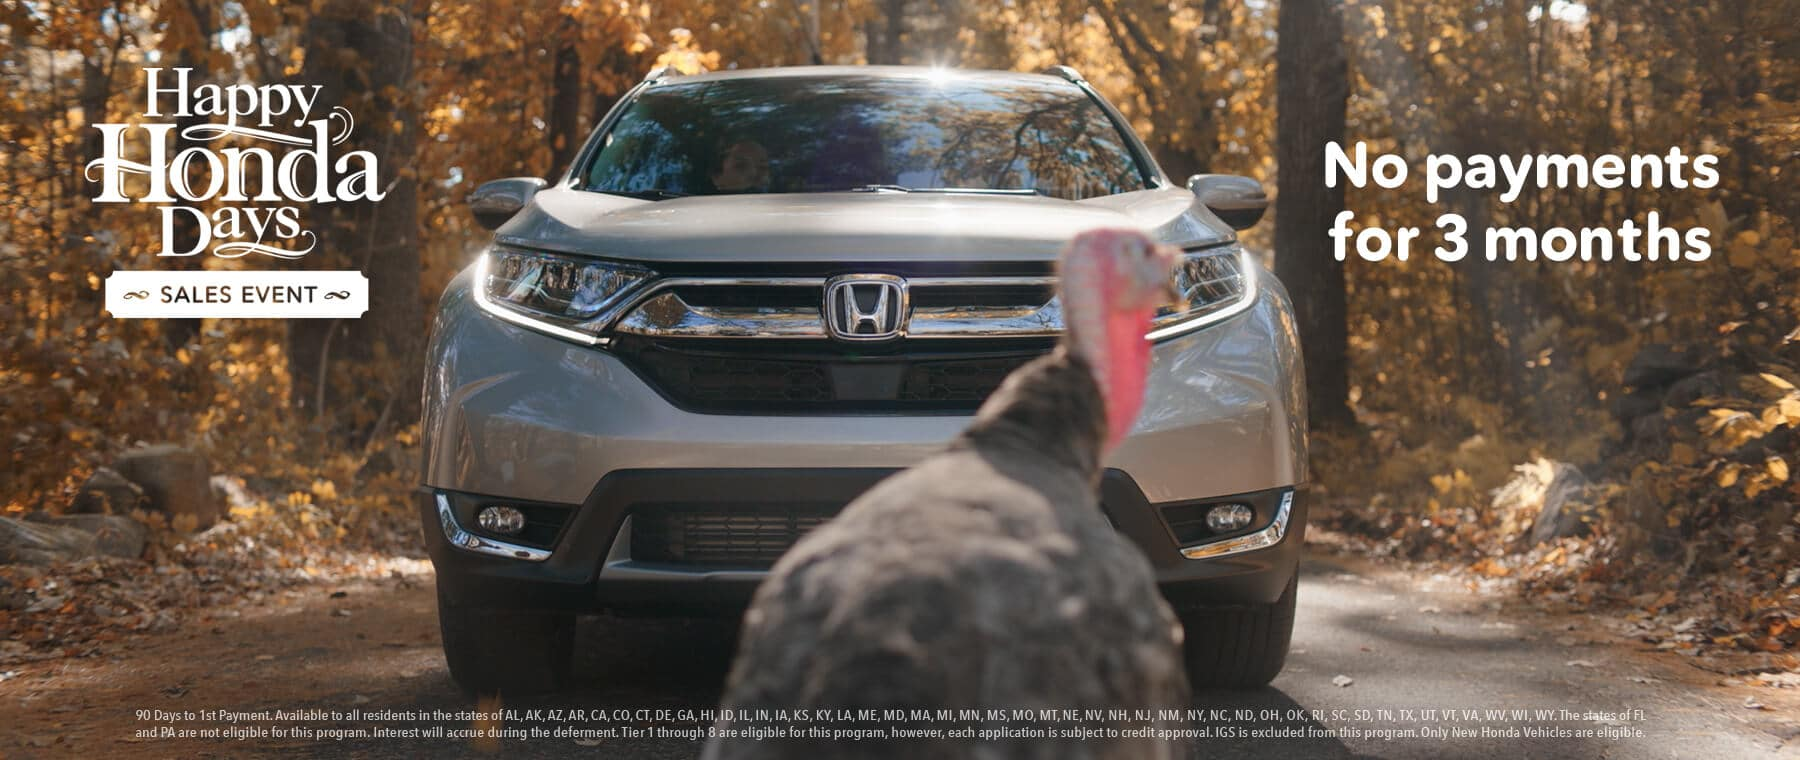 New England Honda Dealers Happy Honda Days Thanksgiving No Payments Slider